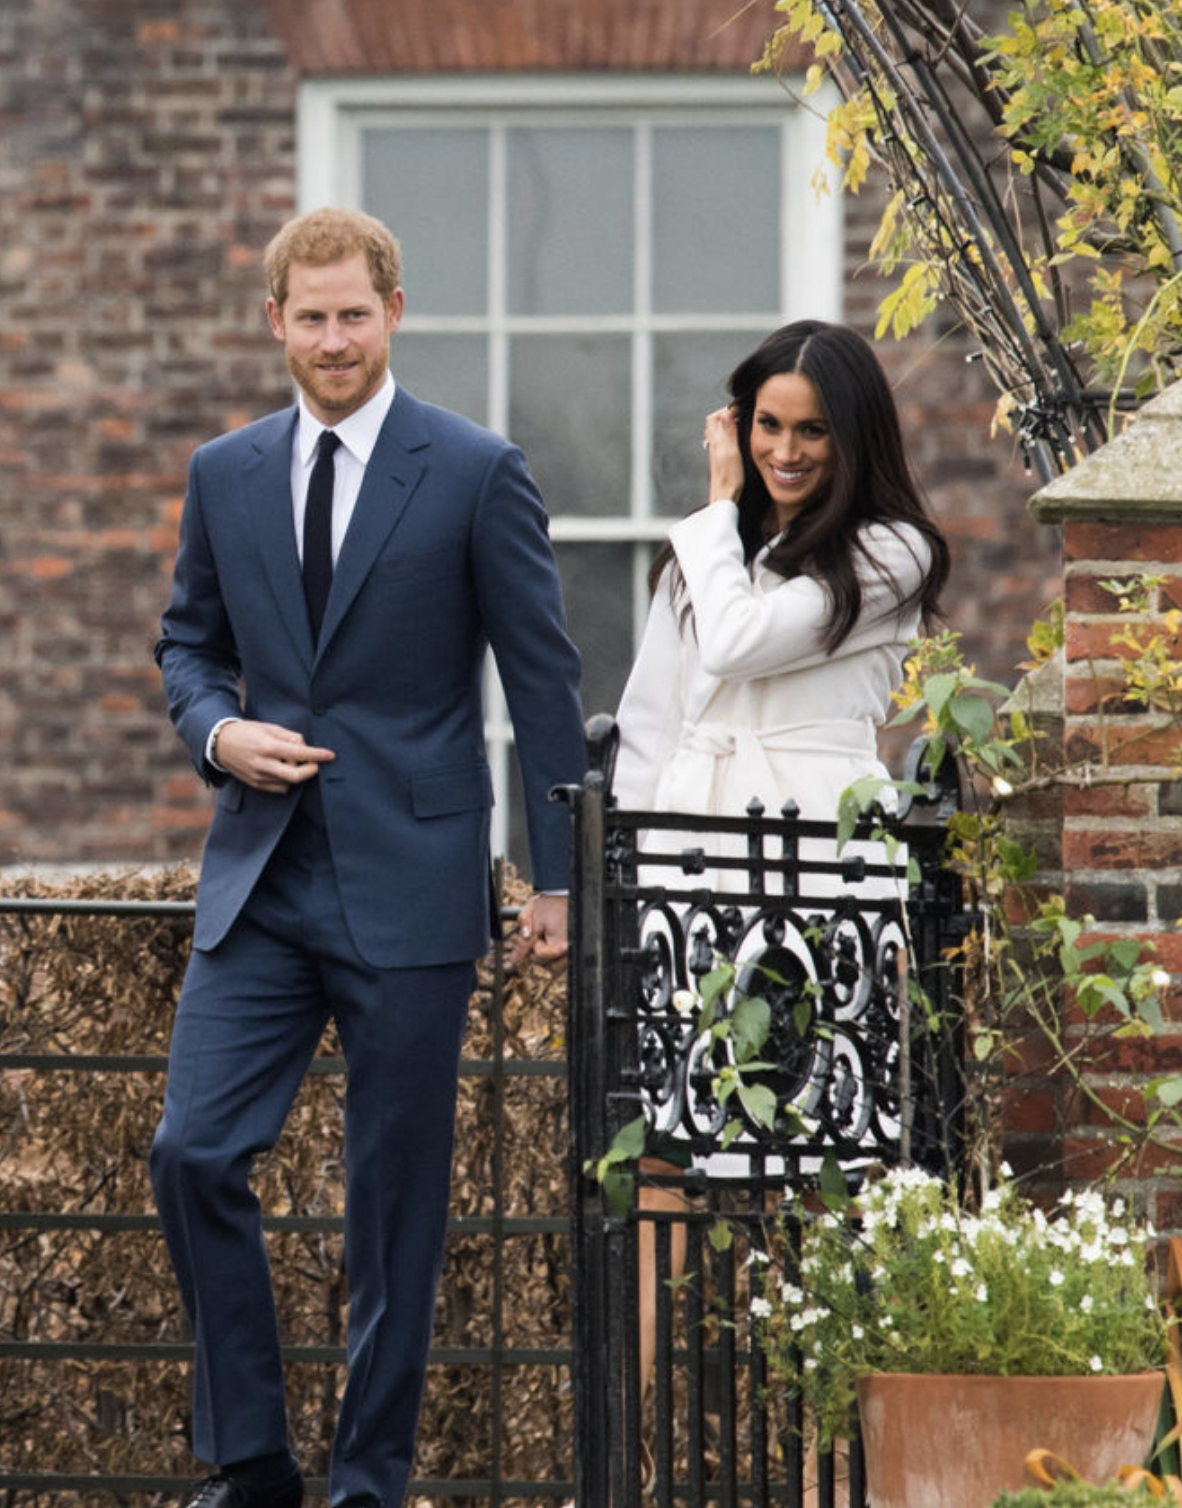 Meghan during her first official royal engagement with Prince Harry / Getty Images / S ource Good Housekeeping